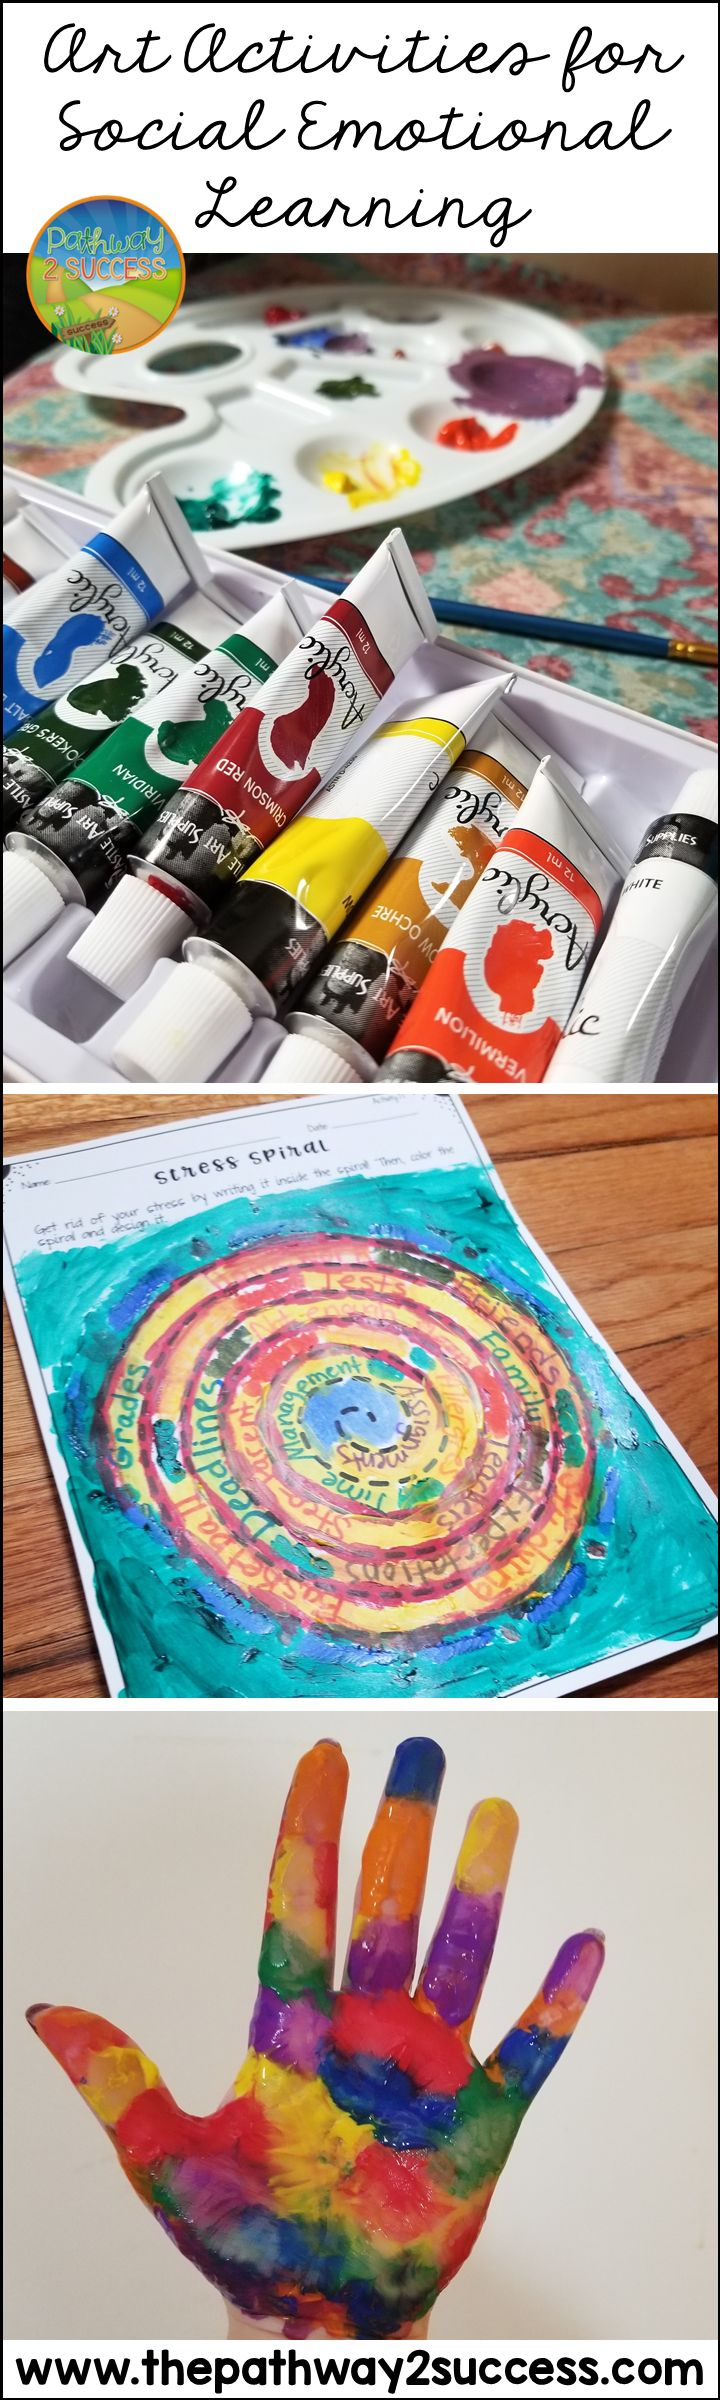 Use art activities to teach critical social emotional learning skills, including confidence, relationship-building, social skills, collaboration, managing emotions, and more.